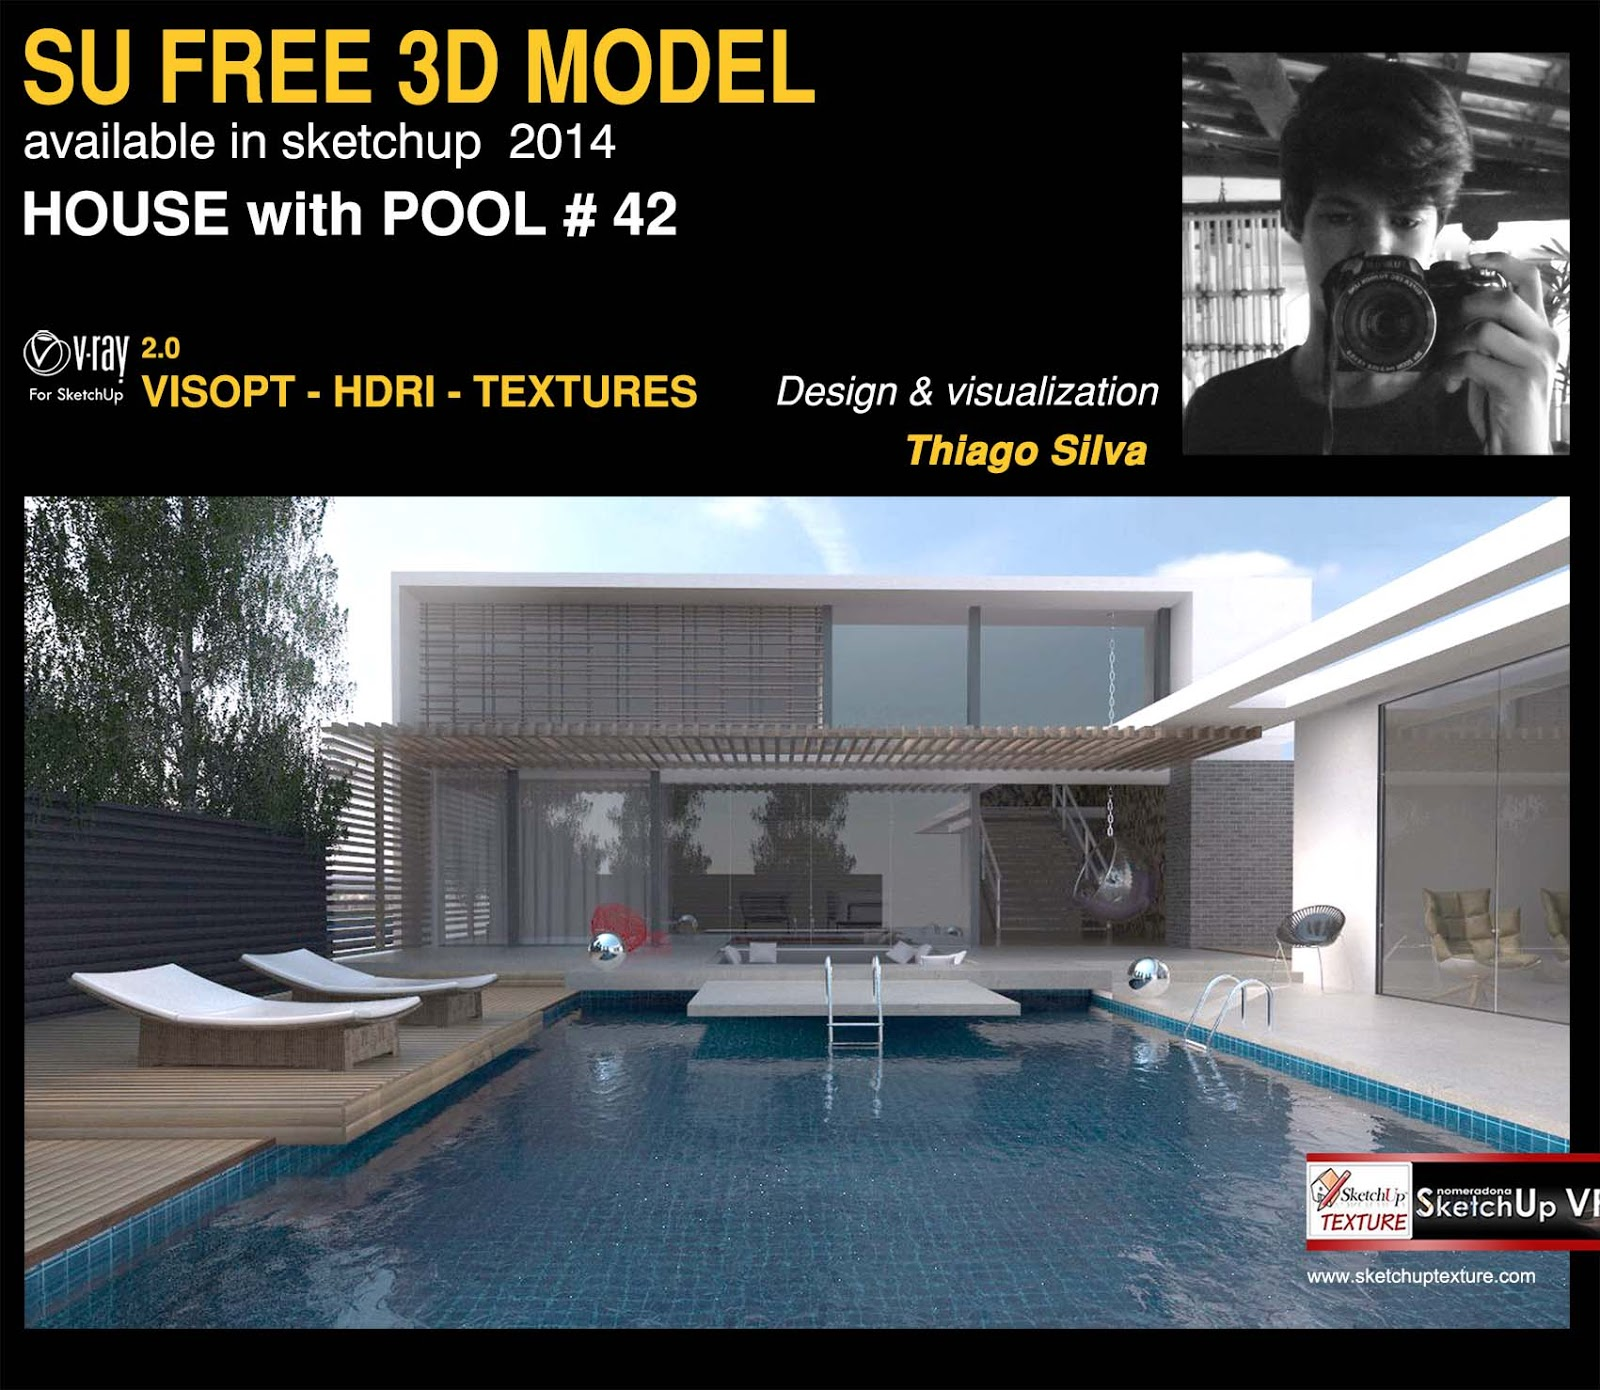 SKETCHUP TEXTURE: Free Sketchup 3d Model House With Pool